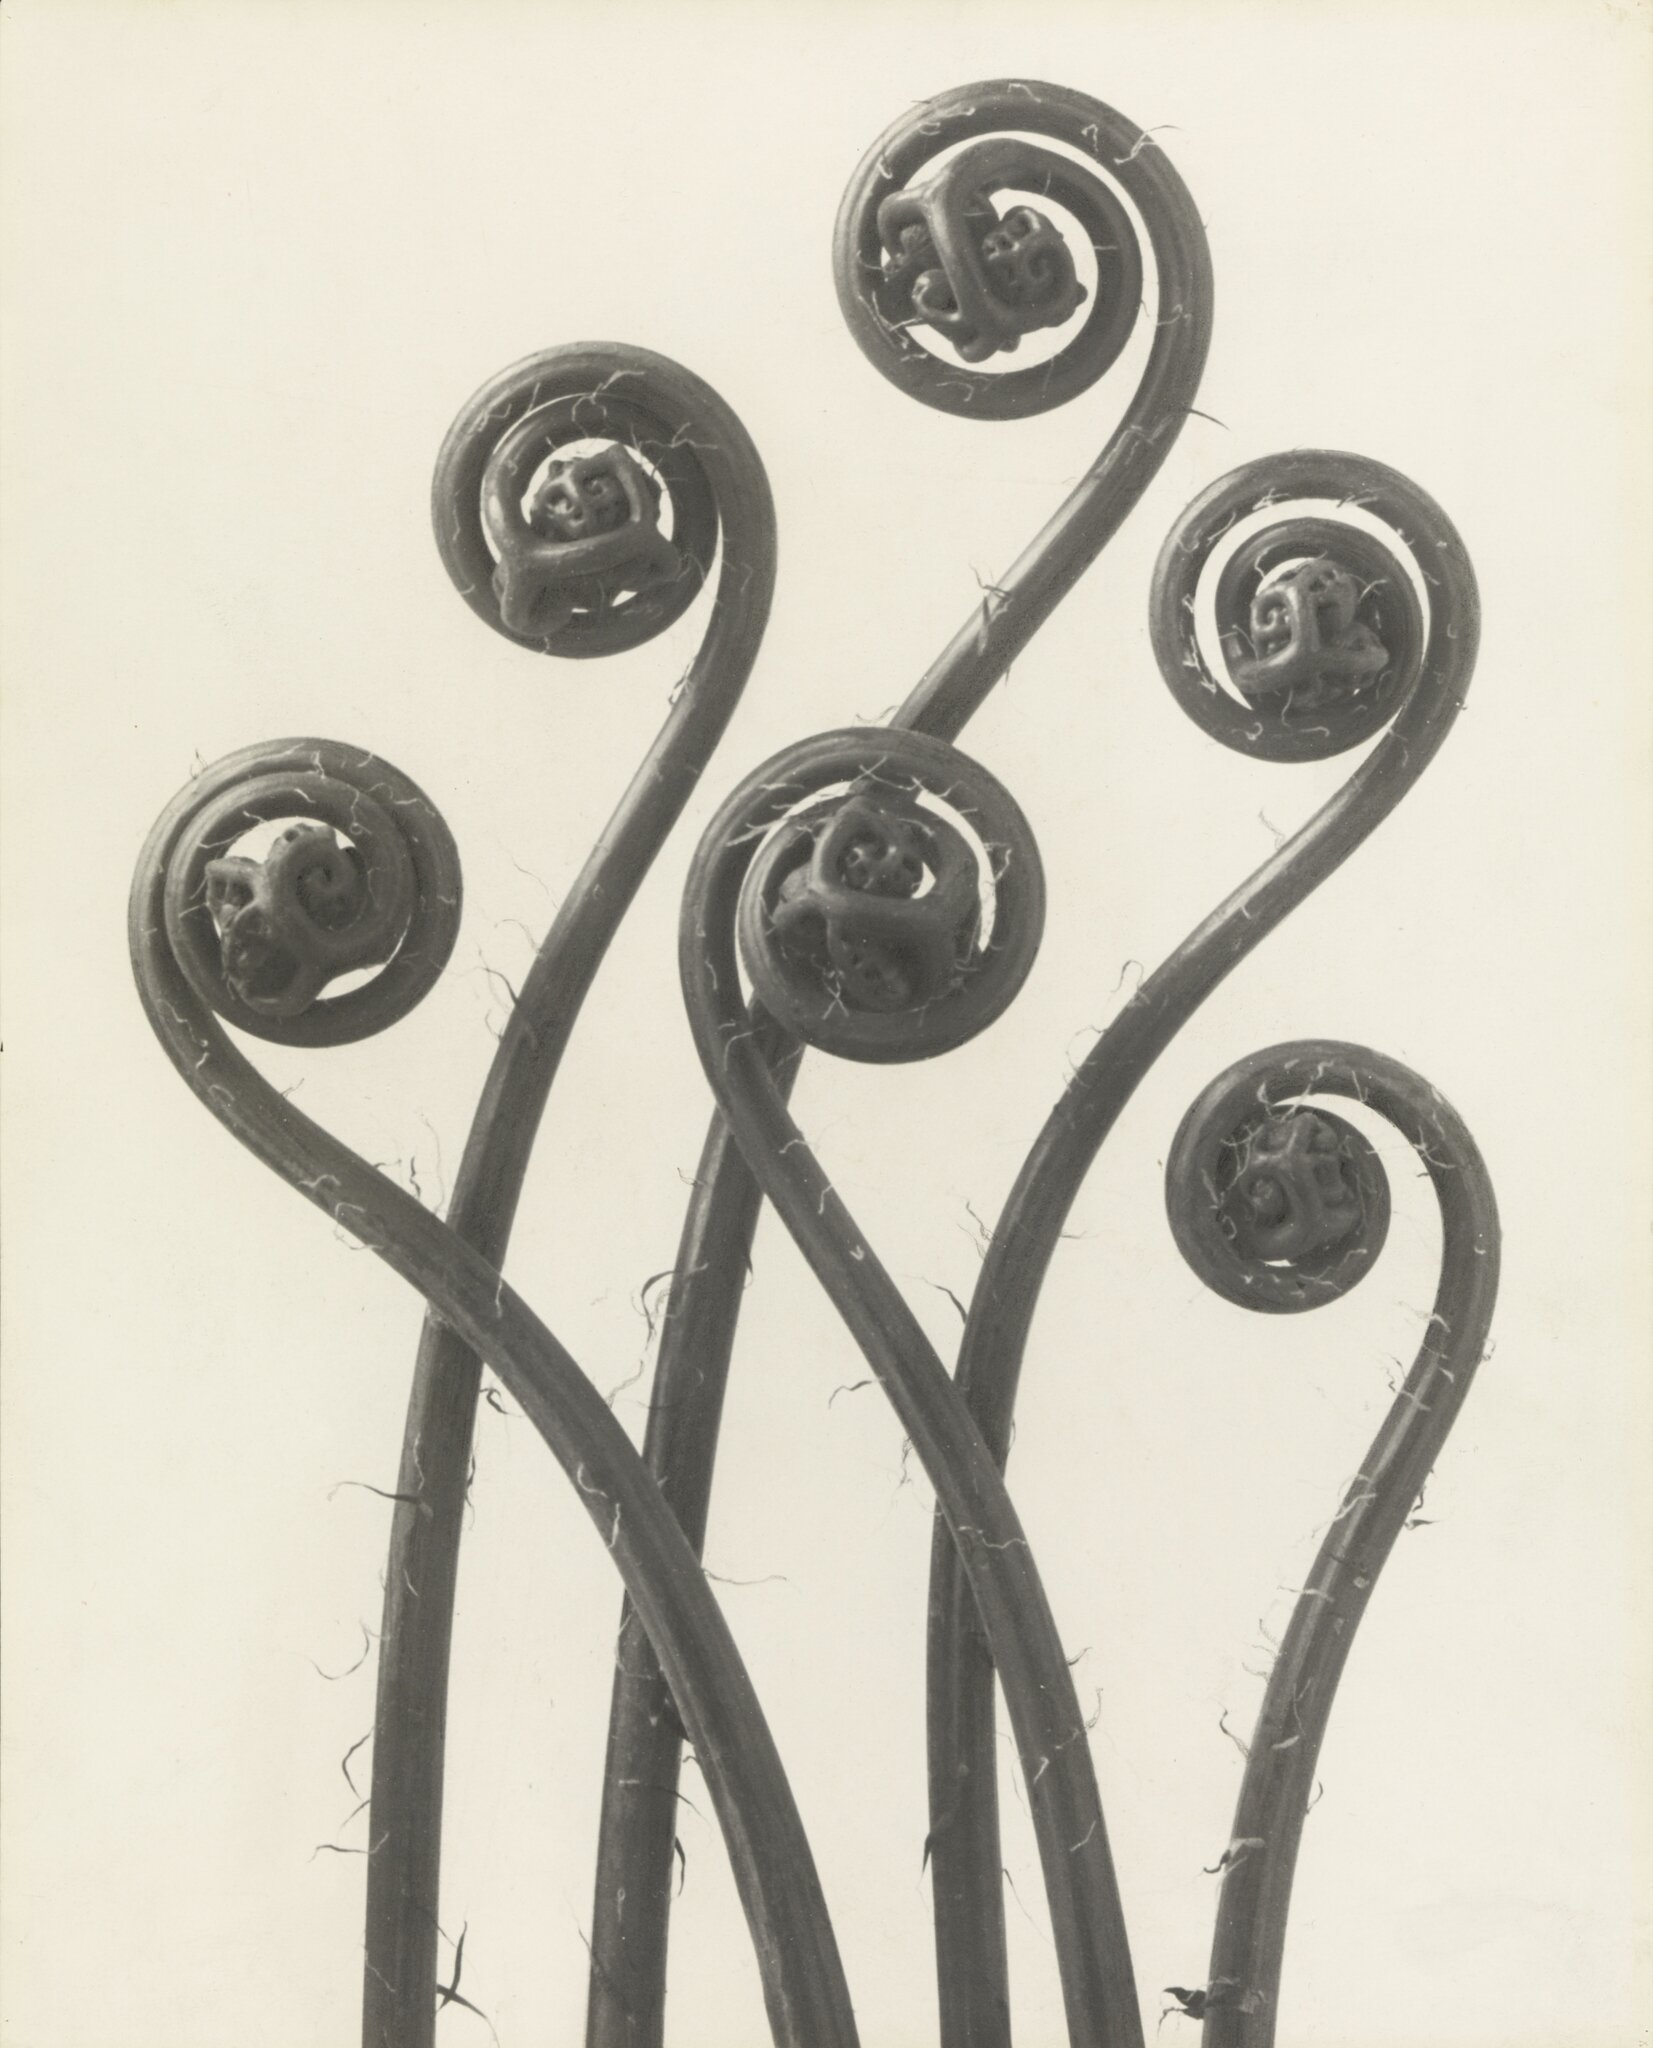 Exhibition of botanical photographs by Karl Blossfeldt opens at Pinakothek der Moderne